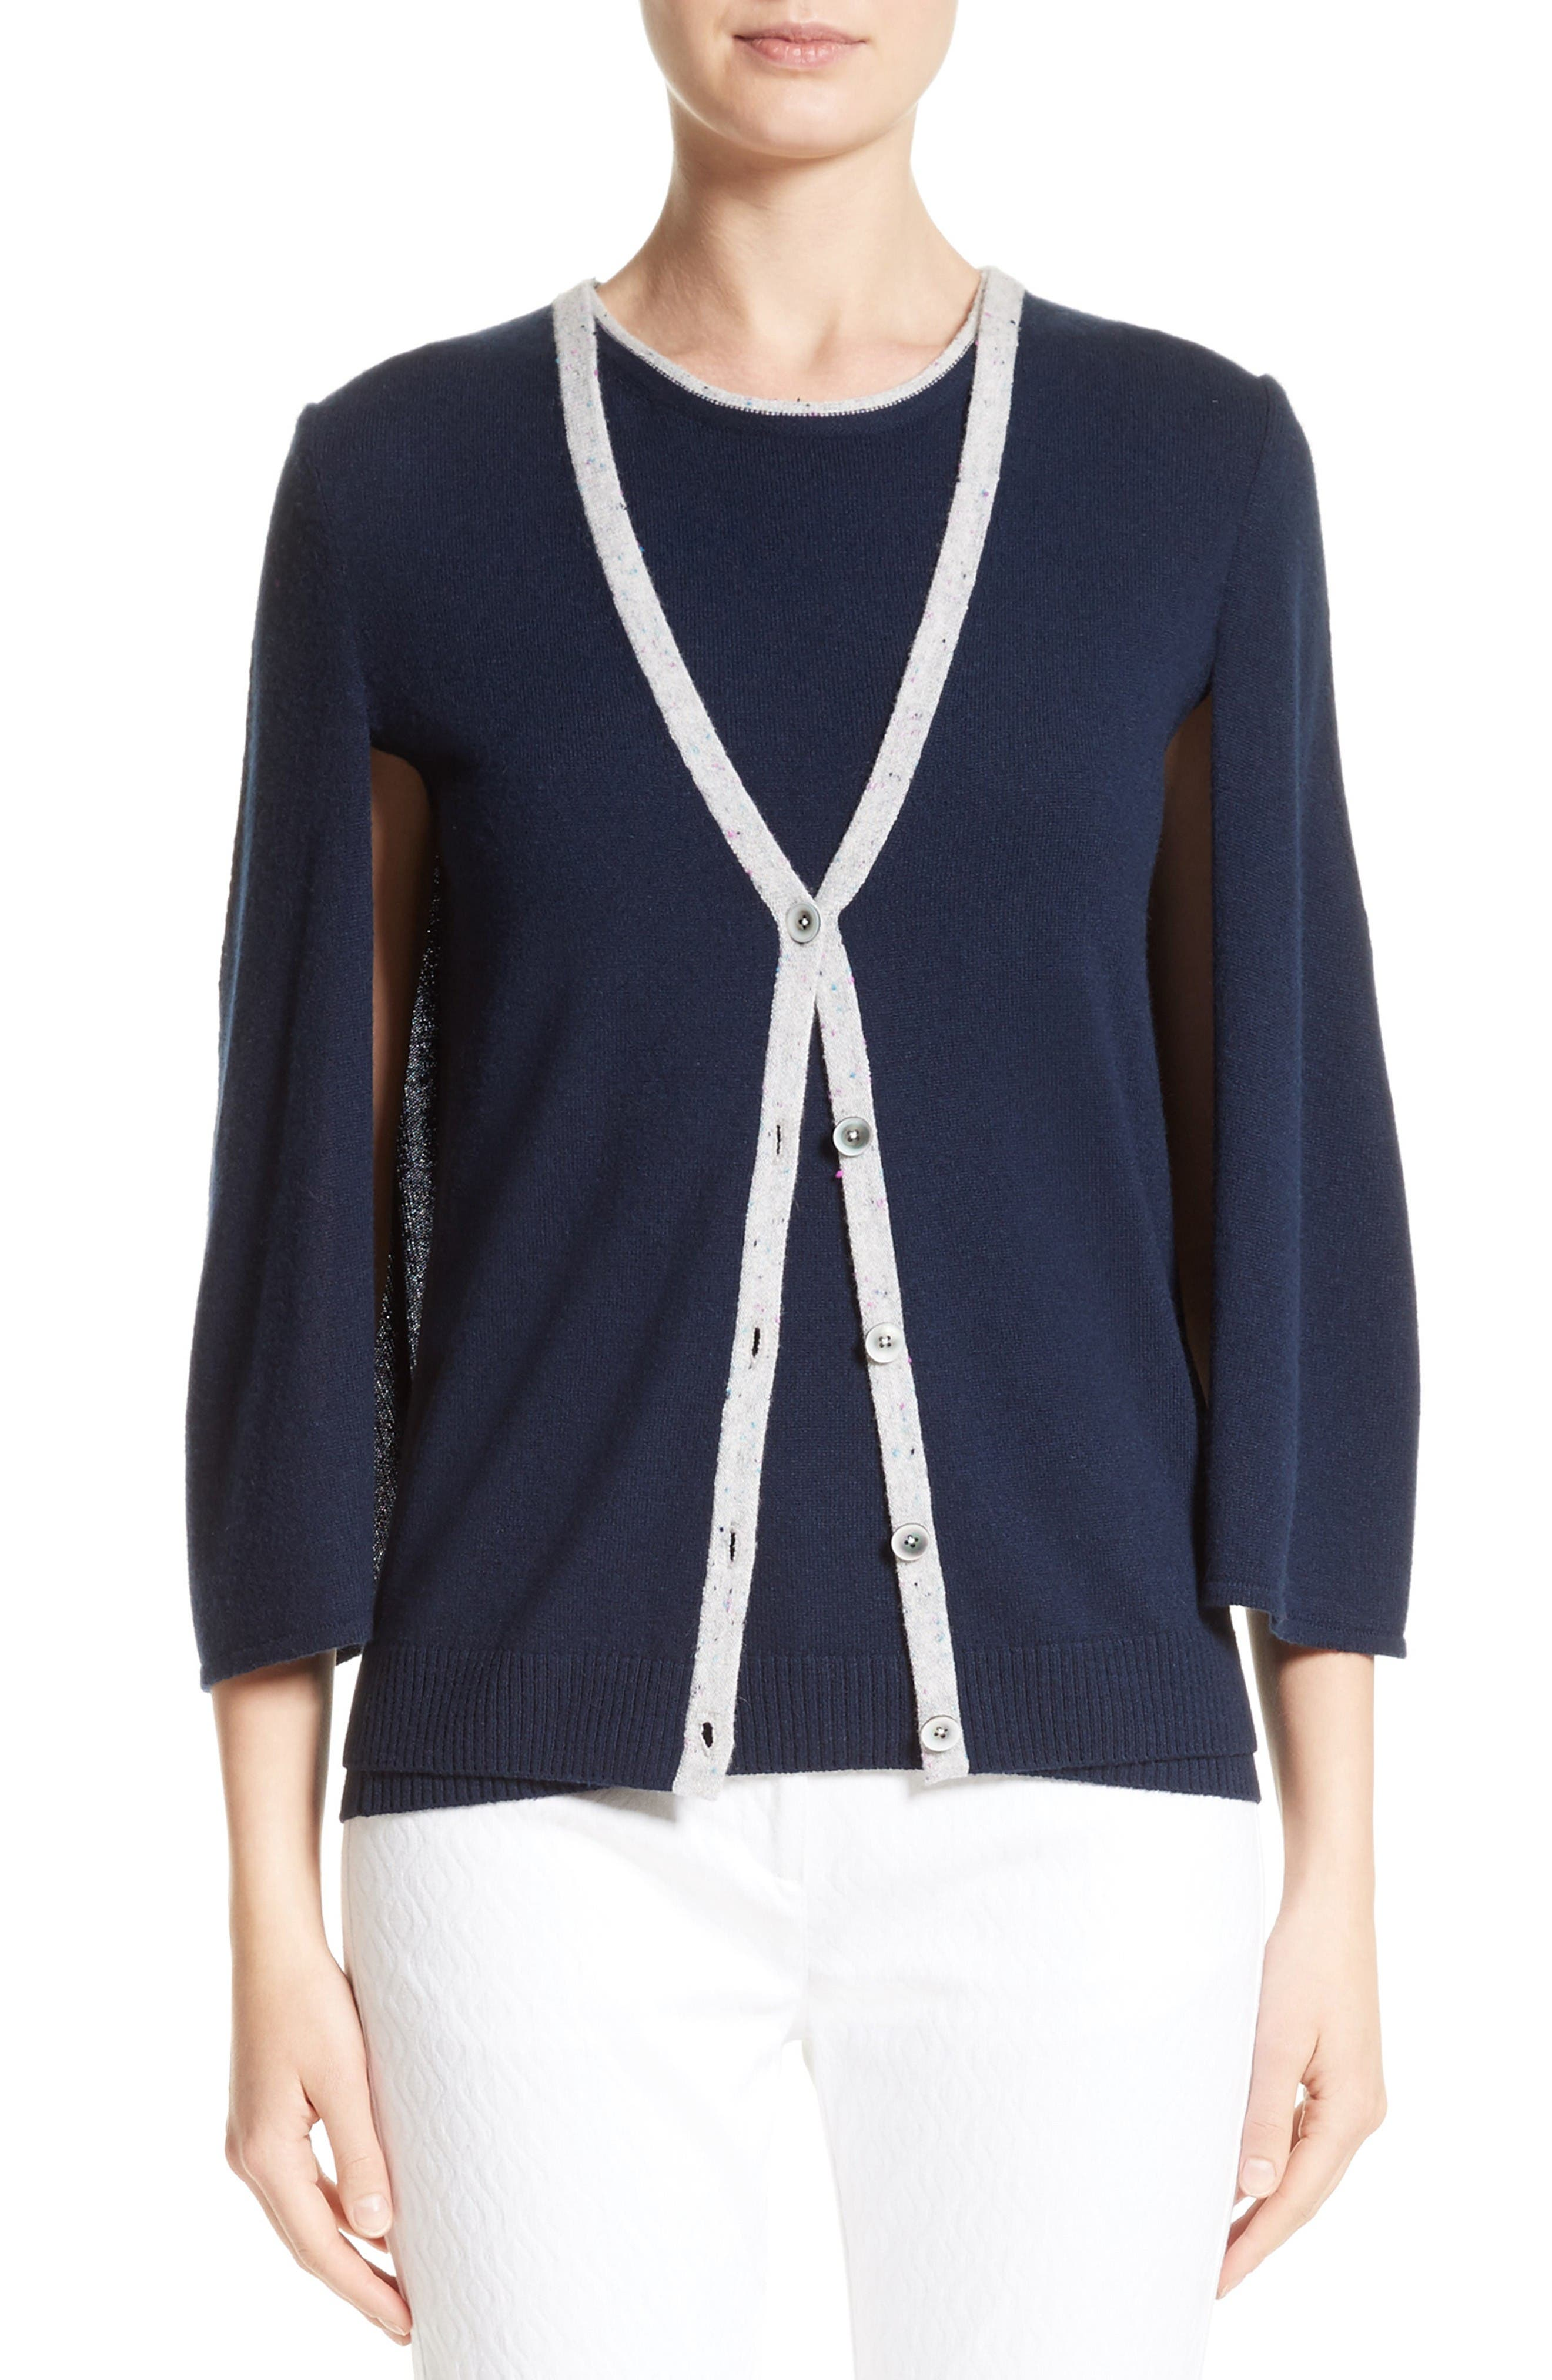 St. John Collection Cashmere Capelette Cardigan